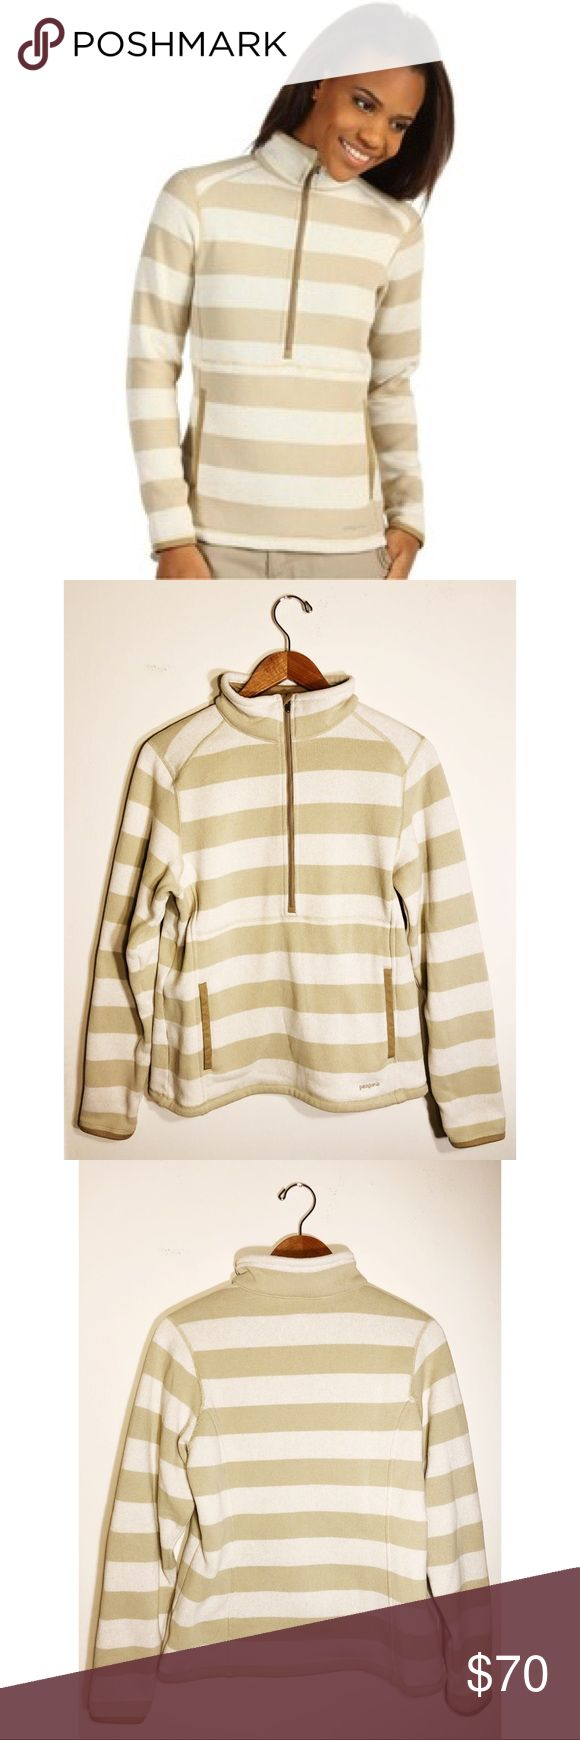 PATAGONIA better sweater stripe marsupial pullover Women's Patagonia fleece pullover sweatshirt, front and back contour shaping with tan and beige stripes. Front 1/2 zipper with 2 side pockets. 100% polyester. In perfect condition 👌🏼 Worn one time. Patagonia Tops Sweatshirts & Hoodies